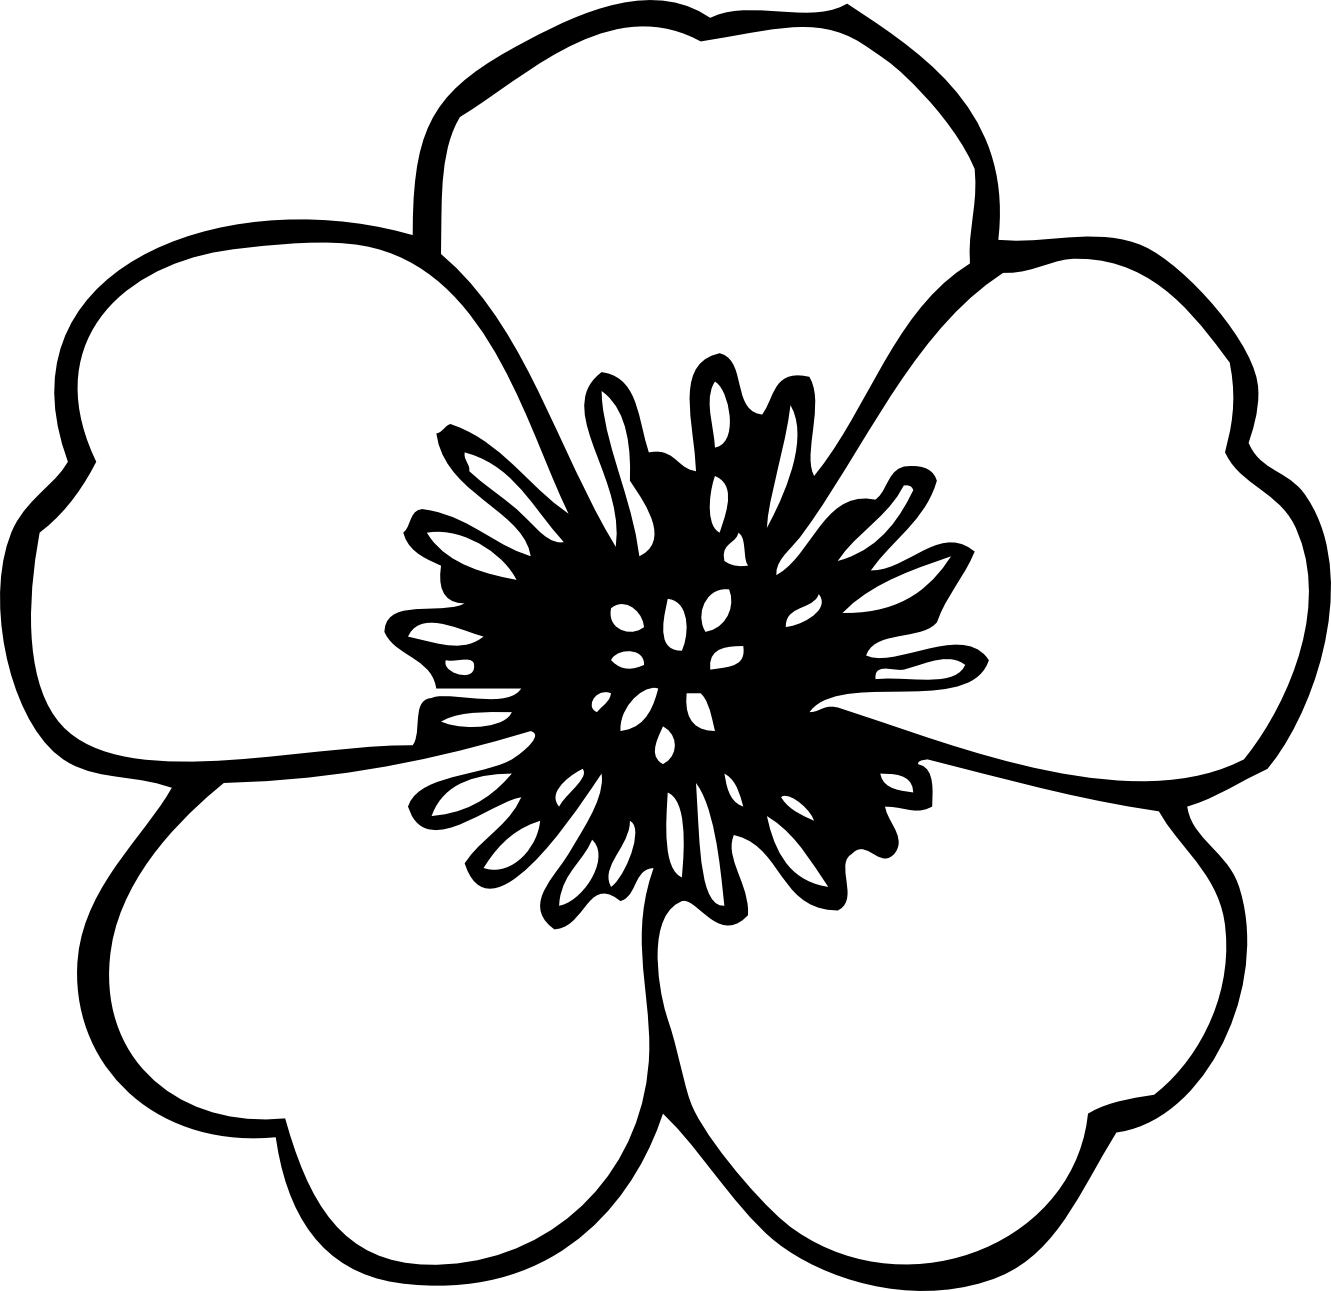 Flower clipart simple black and white. Free images download clip